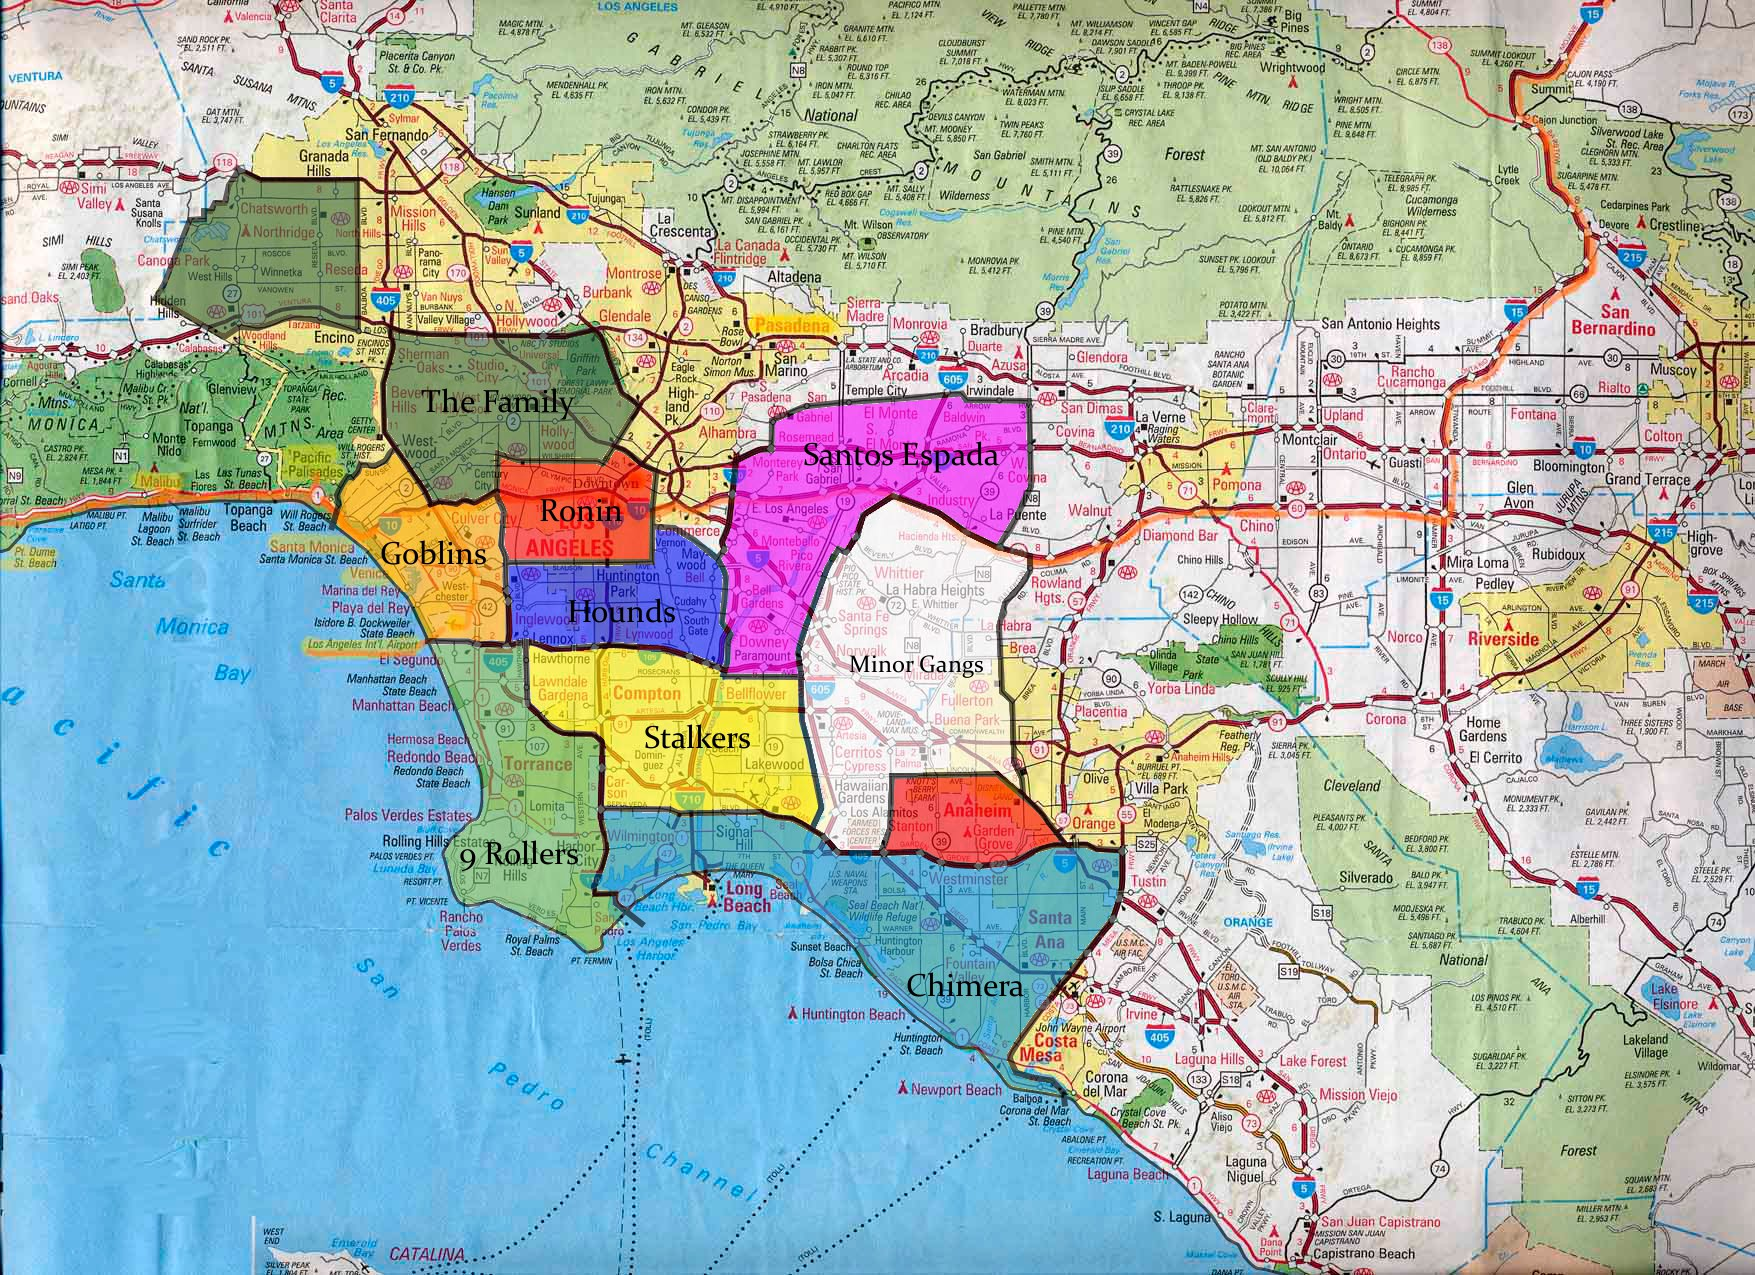 Gang Map Los Angeles Image   Villain Quest Gang Map. | The Iron Master Wiki | FANDOM  Gang Map Los Angeles